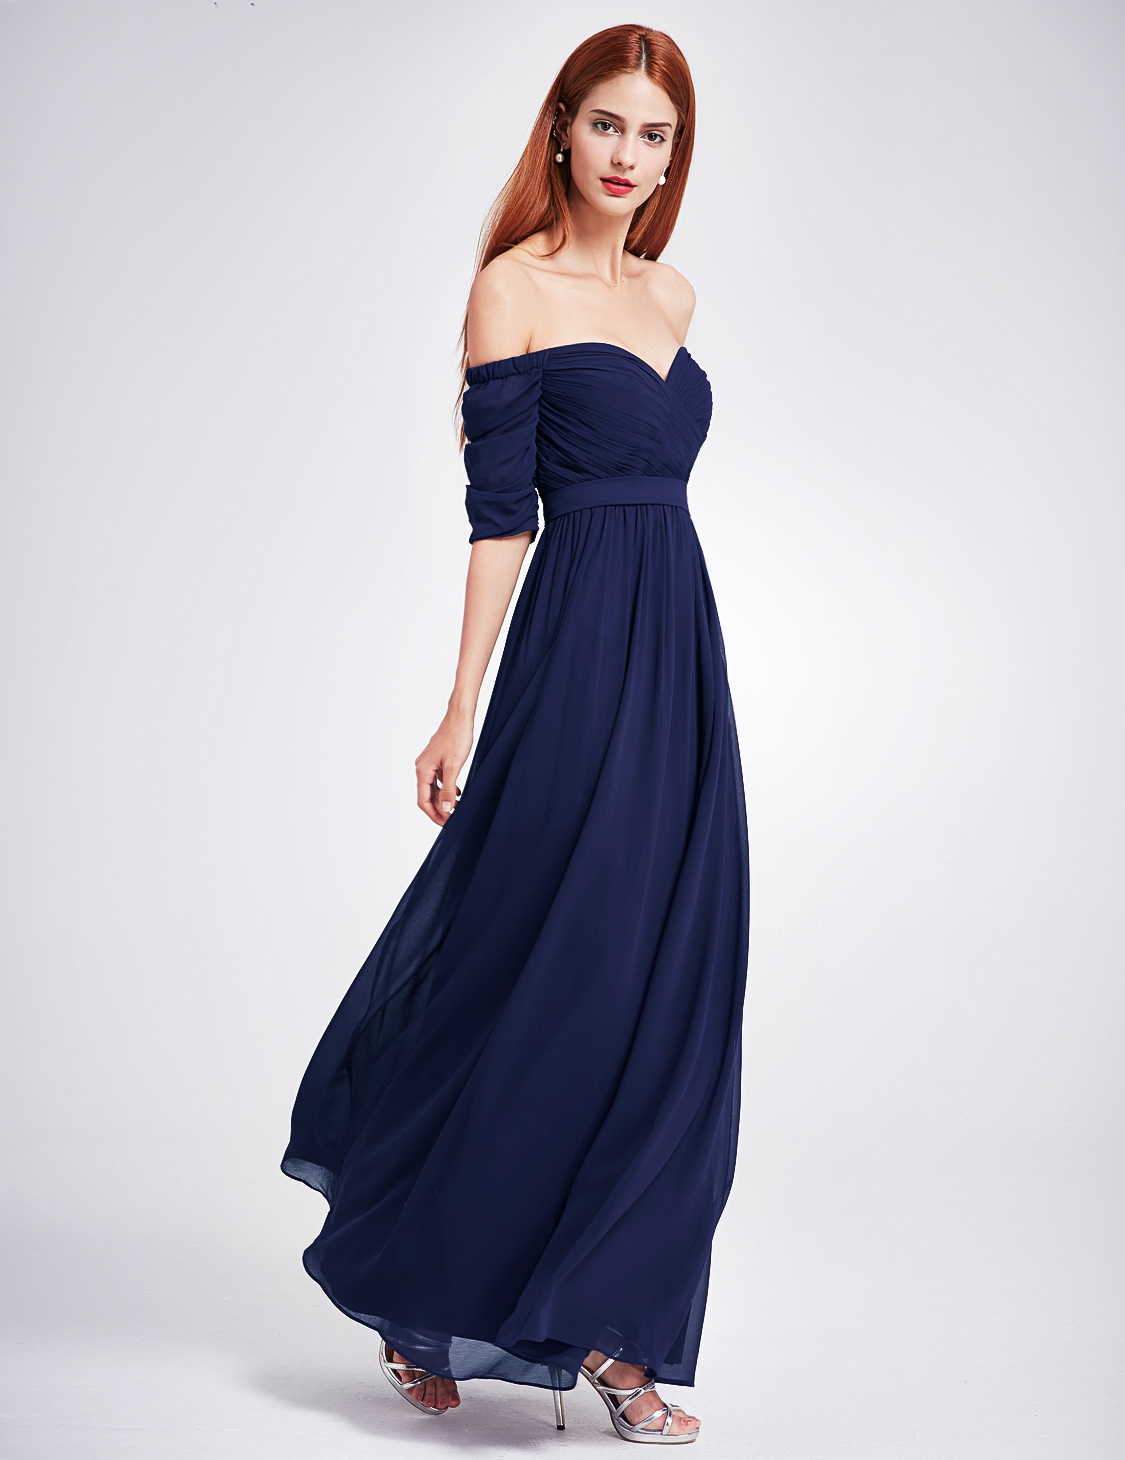 UK Women's Off-shoulder Prom Party Bridesmaid Wedding Maxi ...